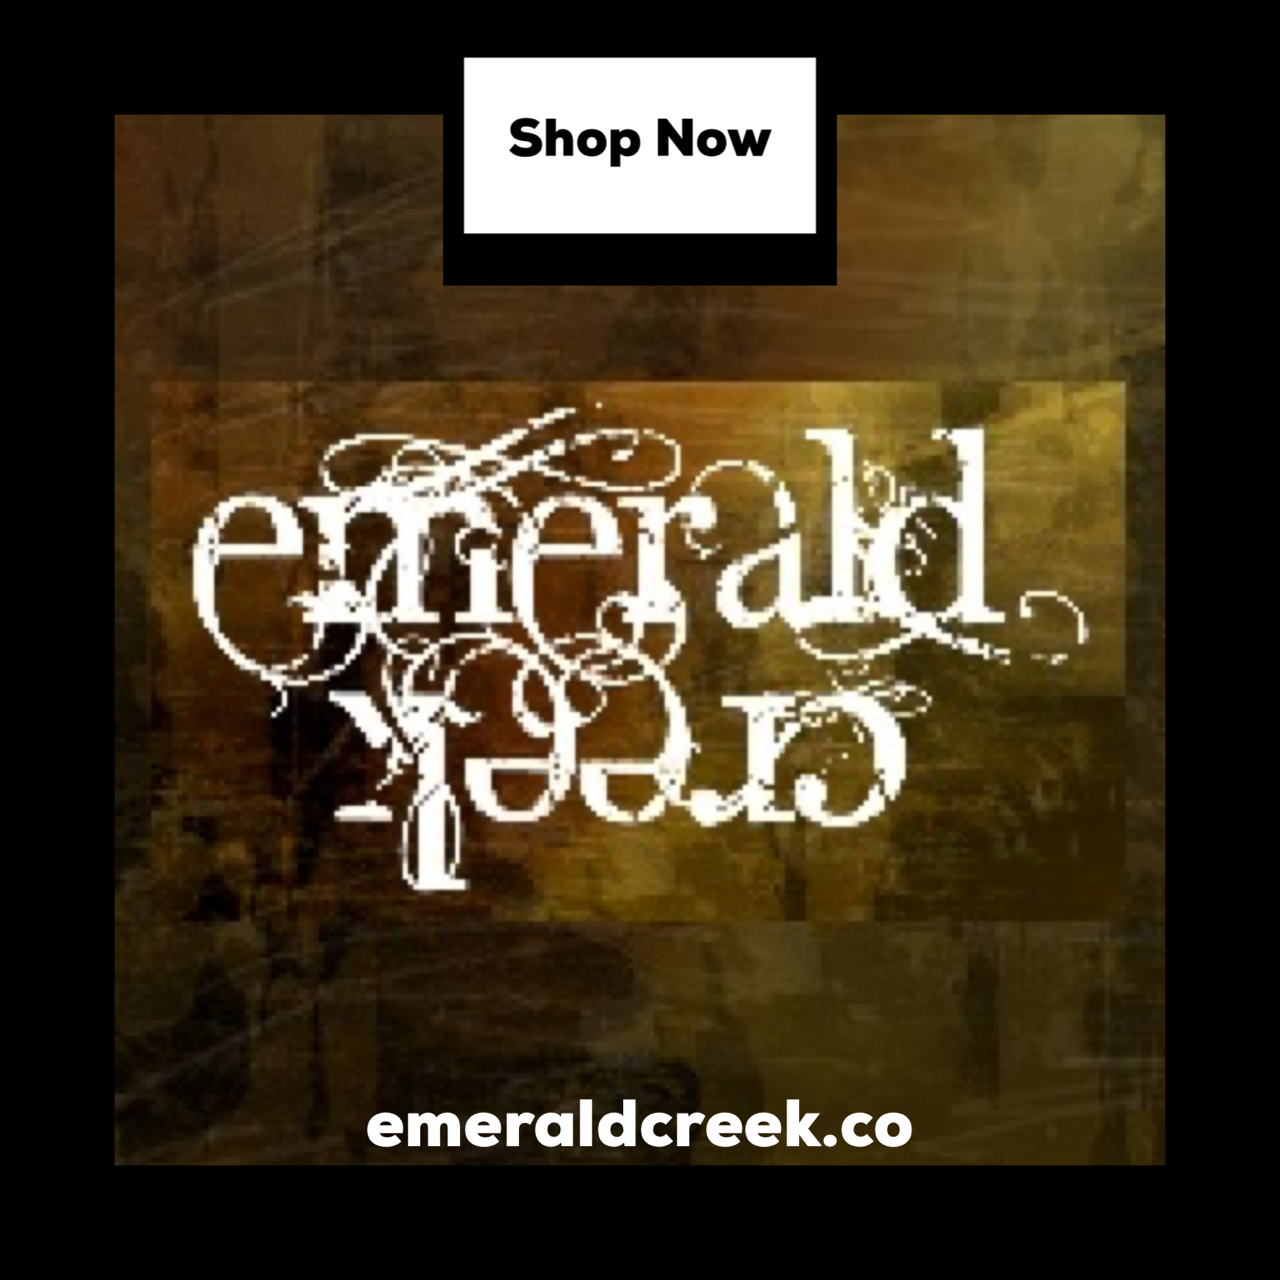 Emerald Creek Craft Supplies Store